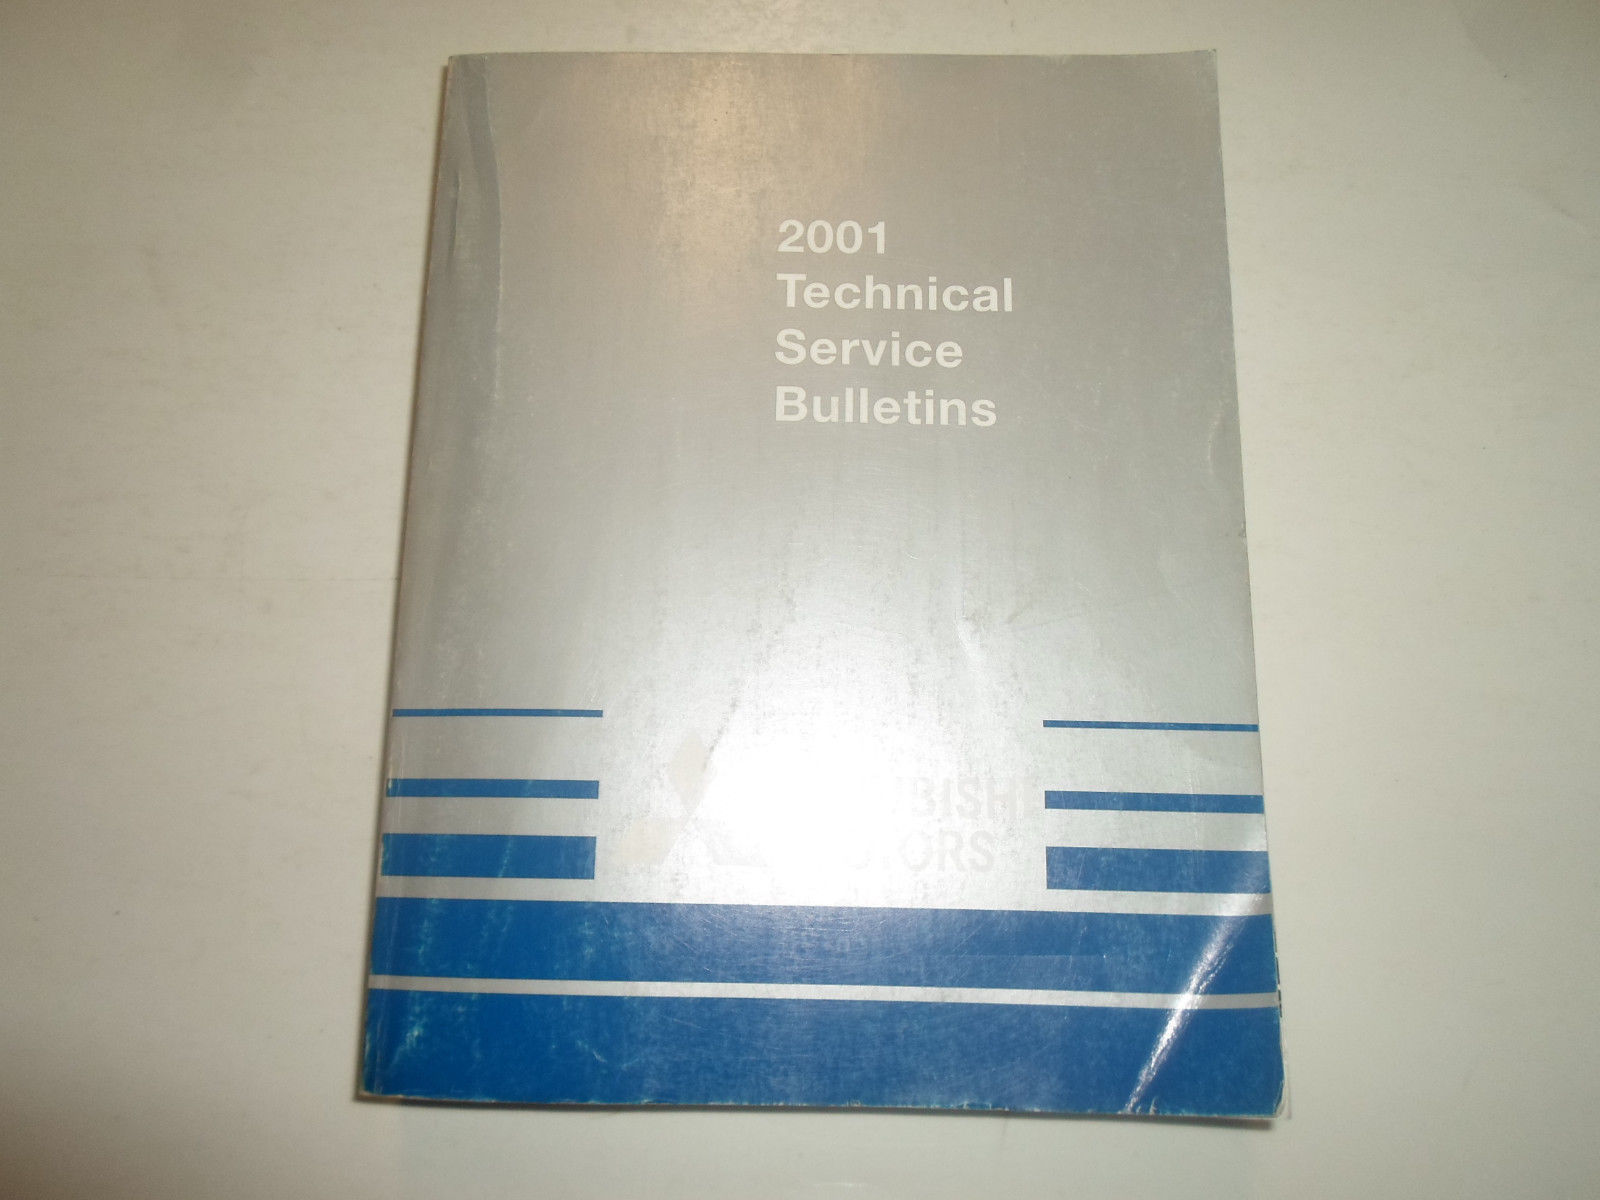 2001 MITSUBISHI Technical Service Bulletins Shop Manual FACTORY OEM BOOK 01 DEAL